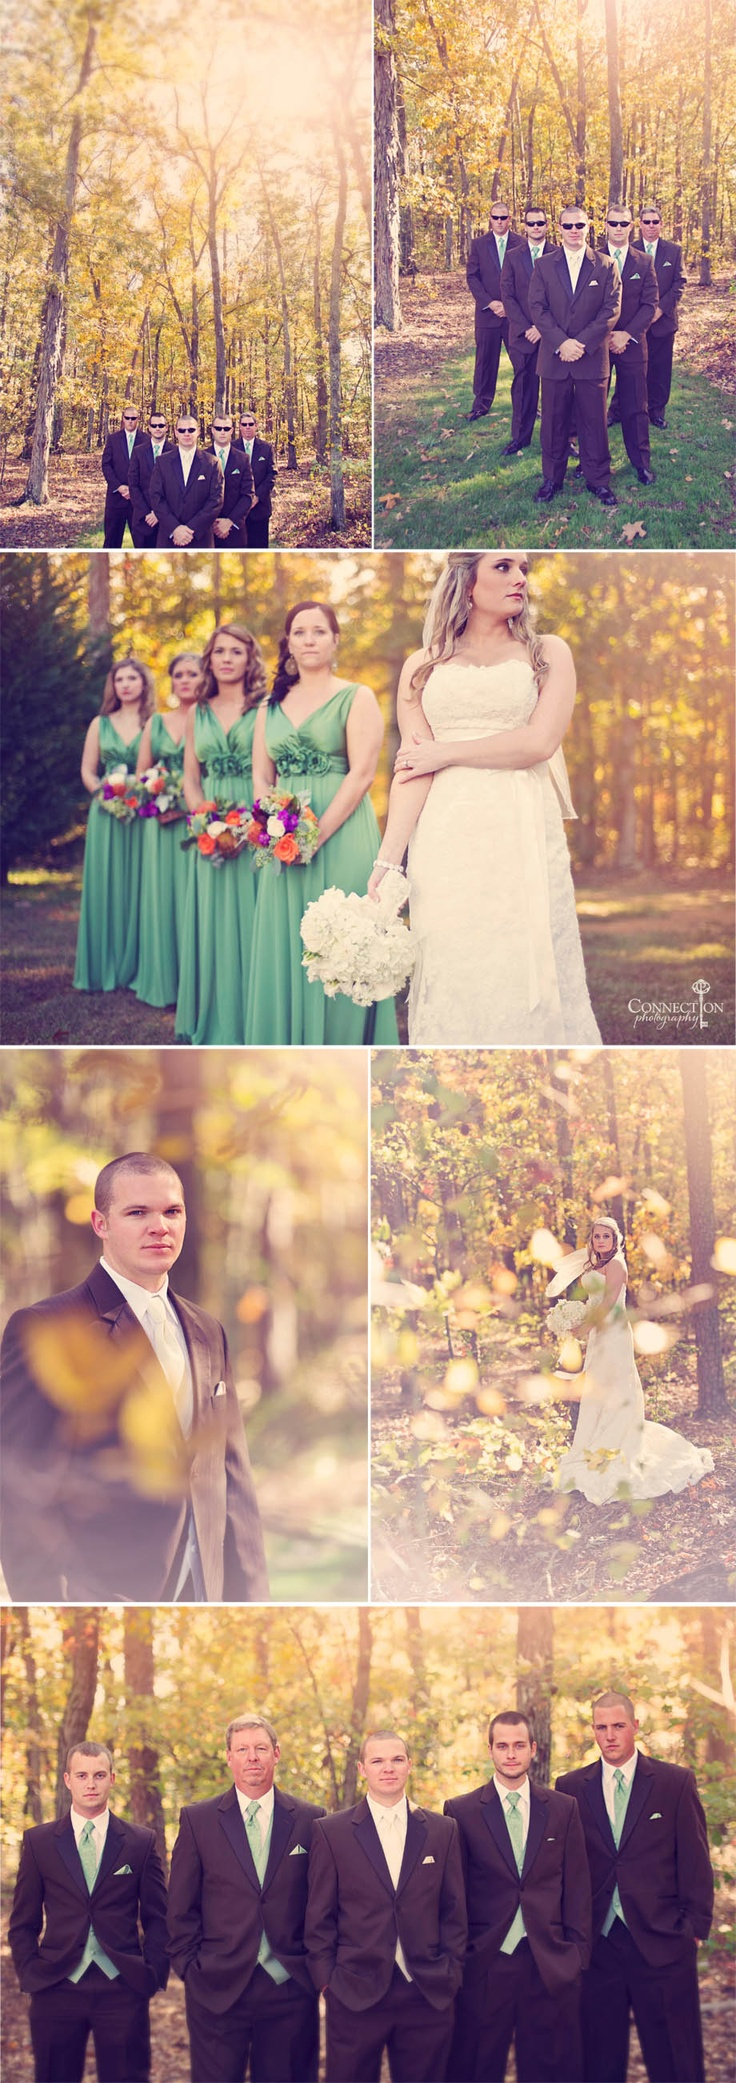 groomsmen and bridesmaids poses - I like the top one of the girls if we had some attitude!